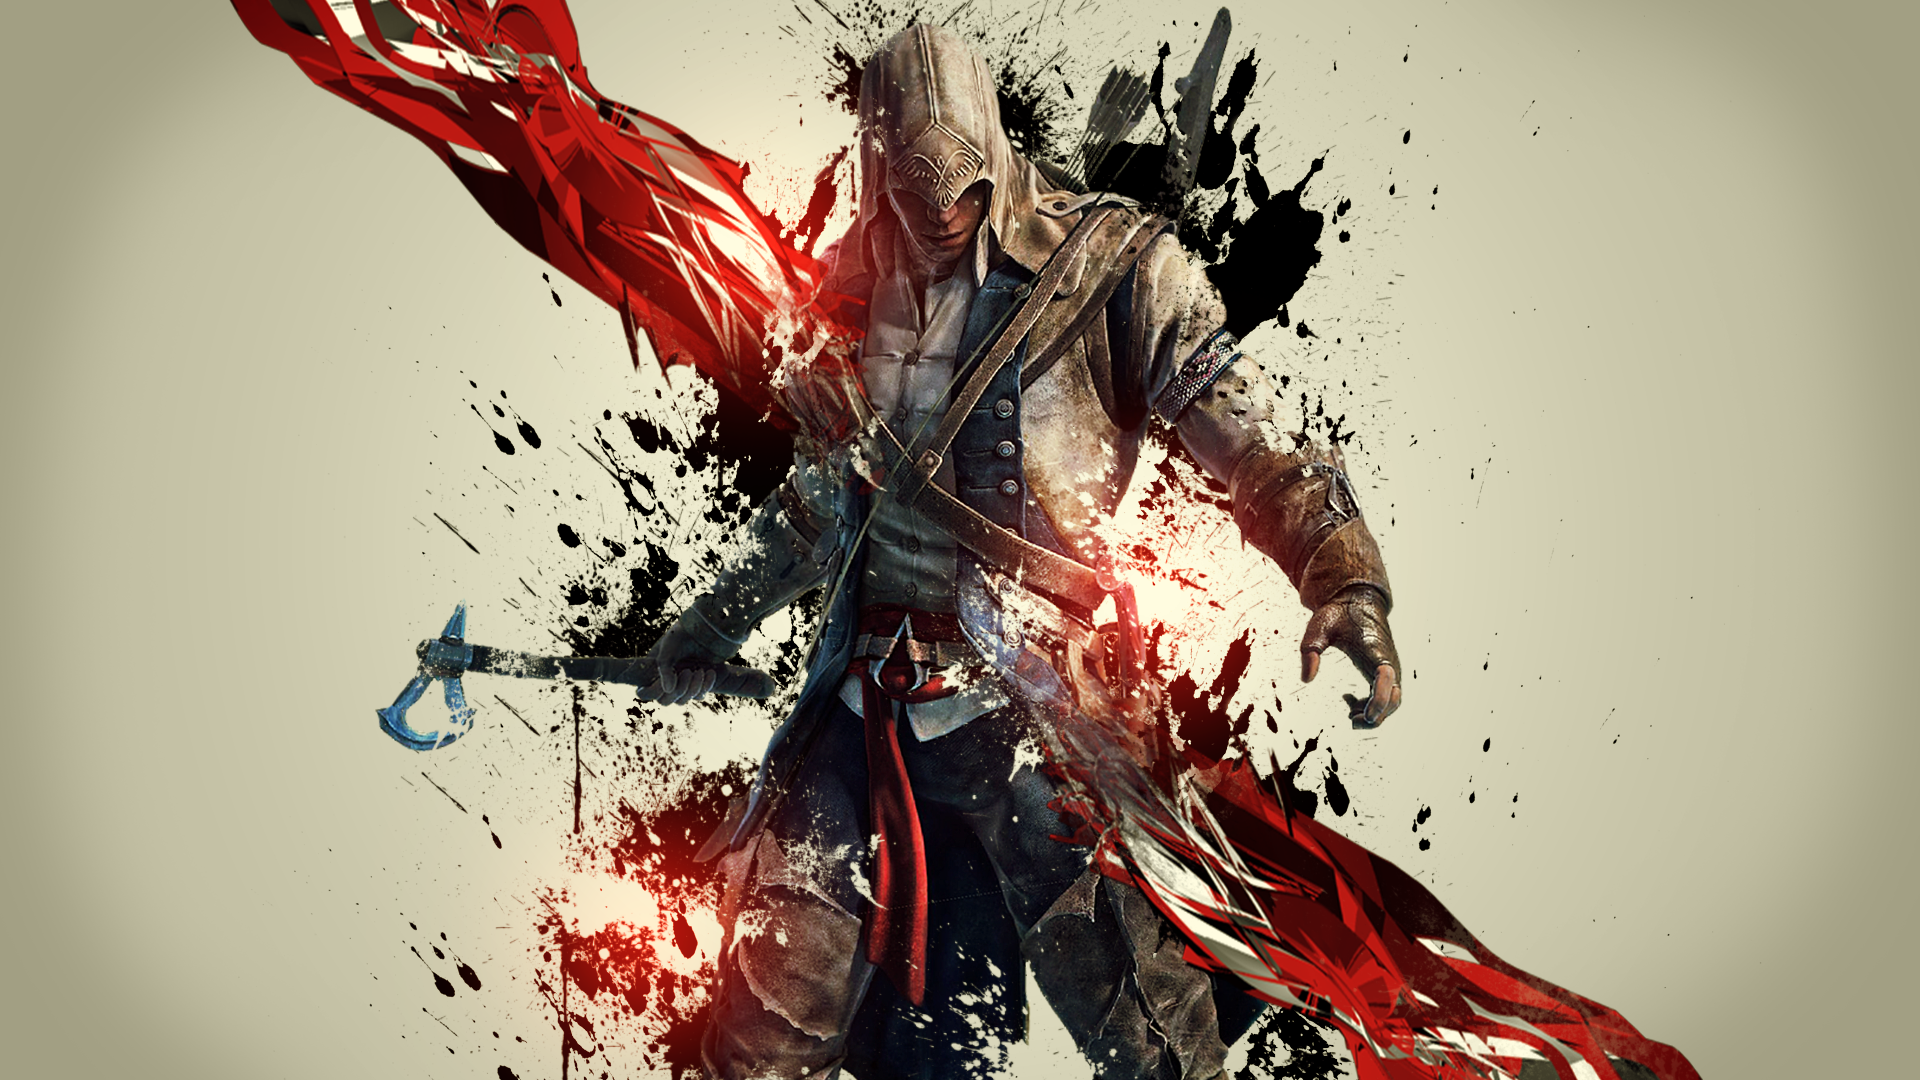 Assassins Creed Iii Hd Wallpaper Background Image 1920x1080